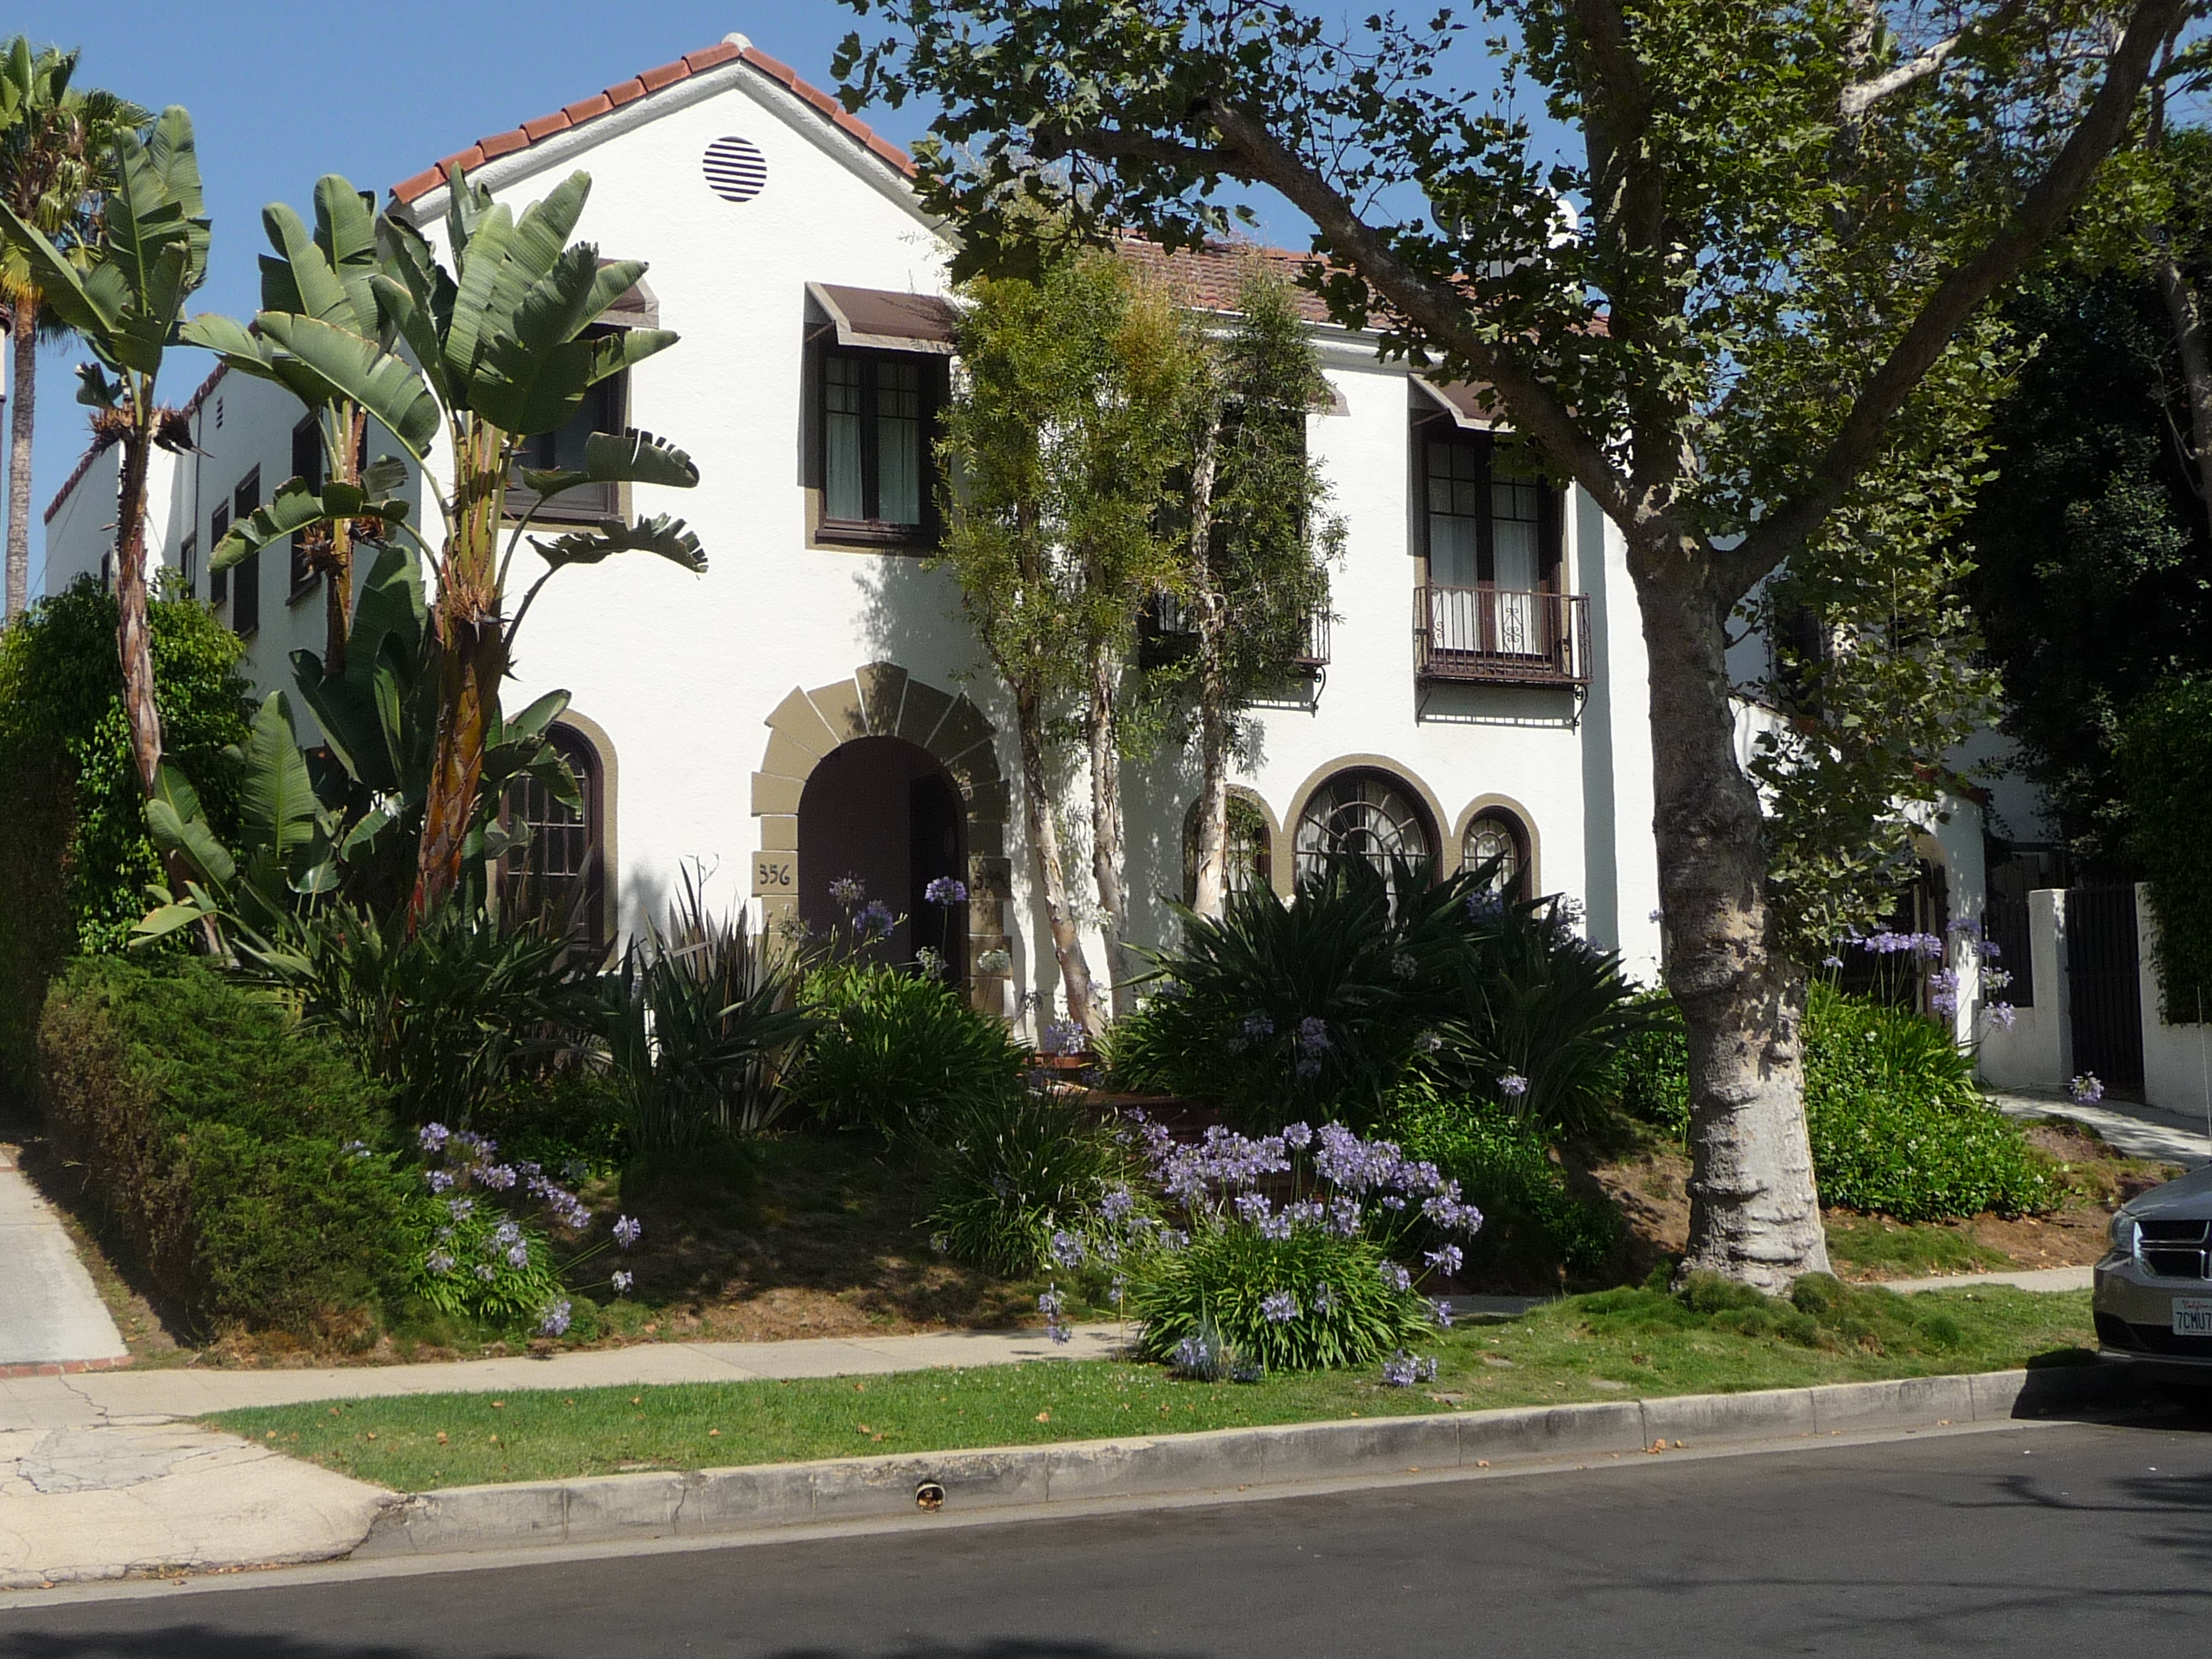 356 N MANSFIELD AVE - PHOTO